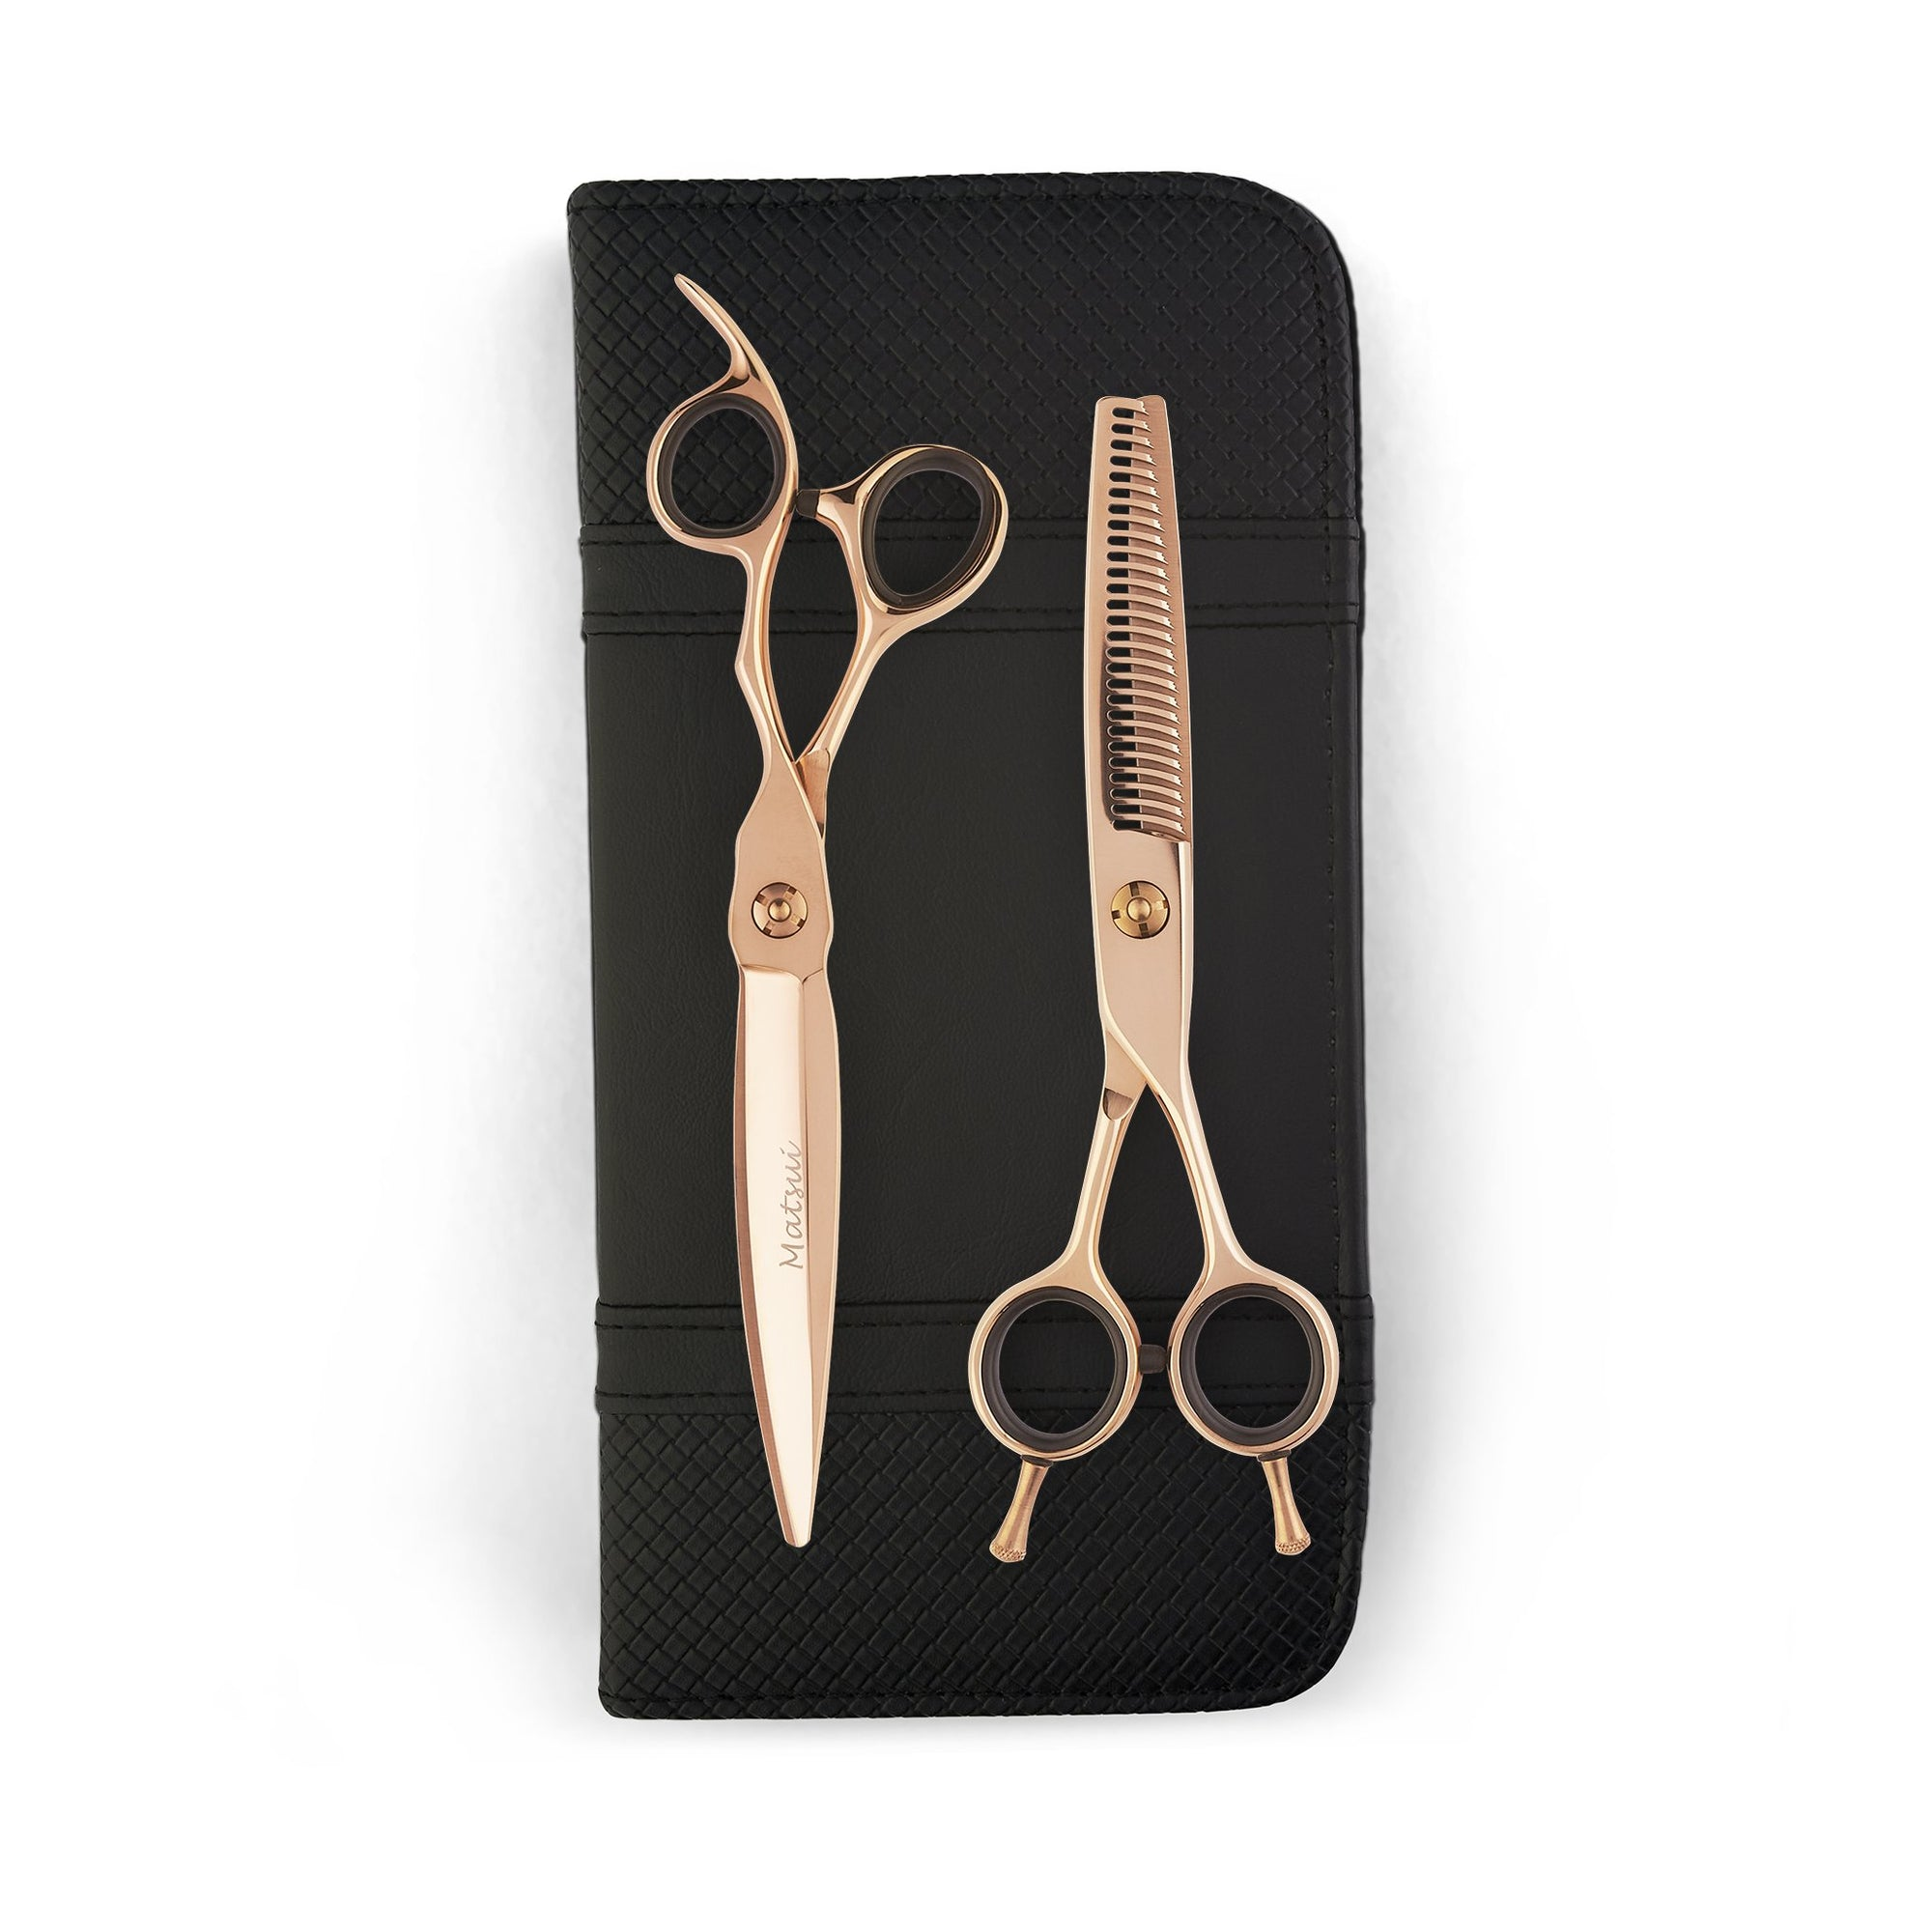 6 inch Matsui VG10 Sword Scissor Thinner Combo - Rose Gold - Scissor Tech Canada